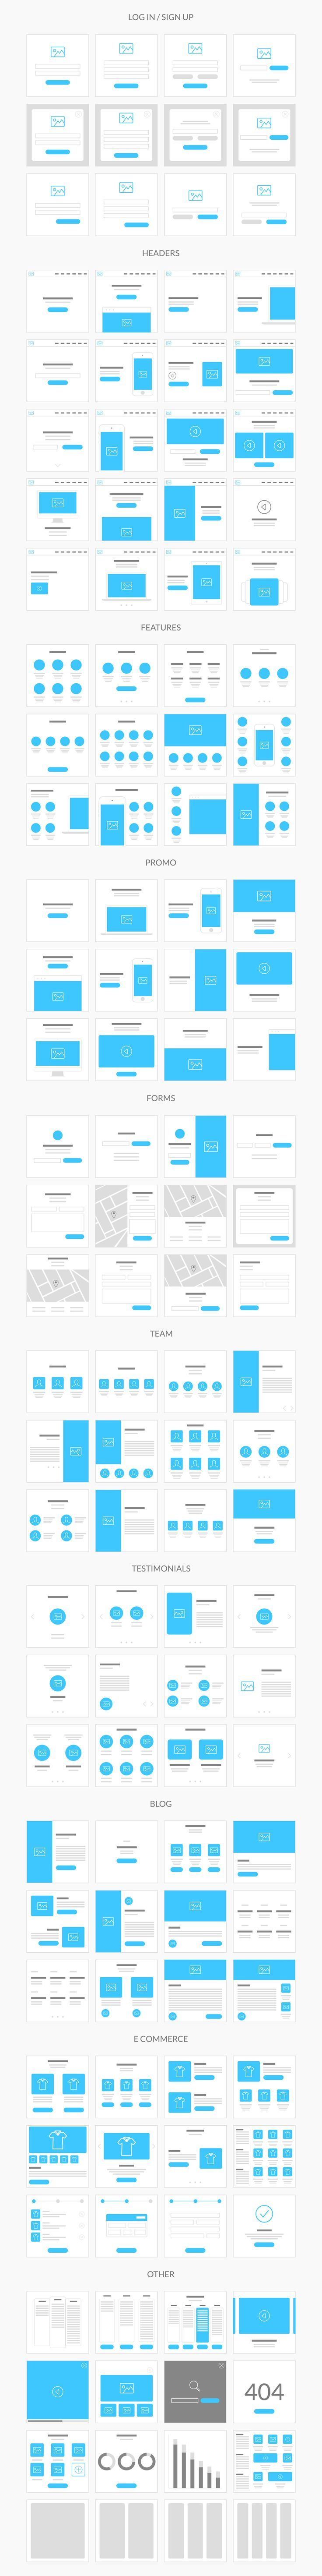 84 best User Experience and Interaction Design images on Pinterest ...